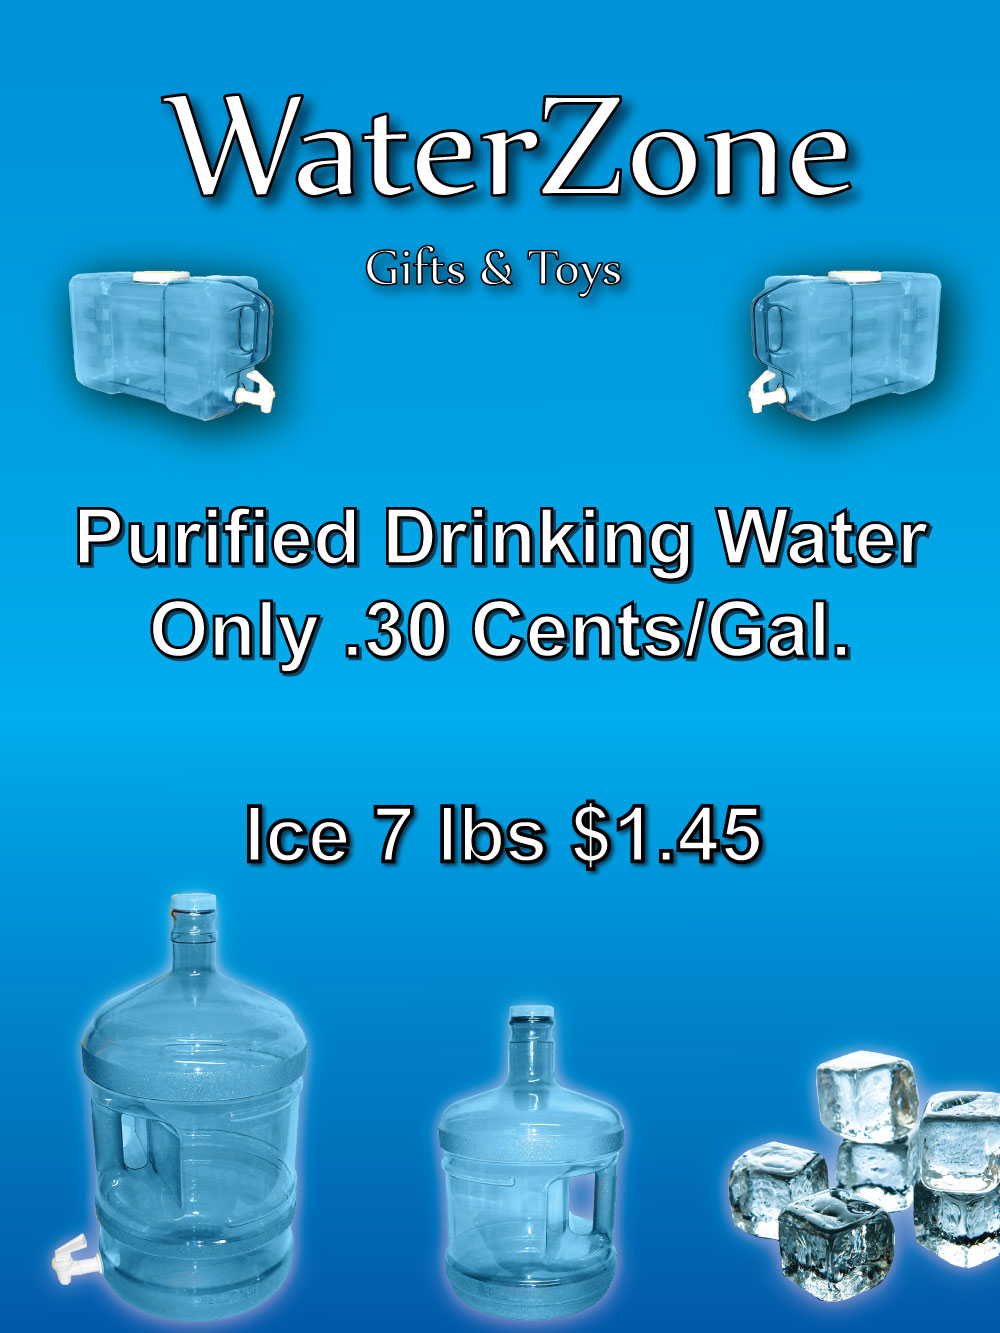 Home Water Zone Gift Amp Toys Purified Water Gifts